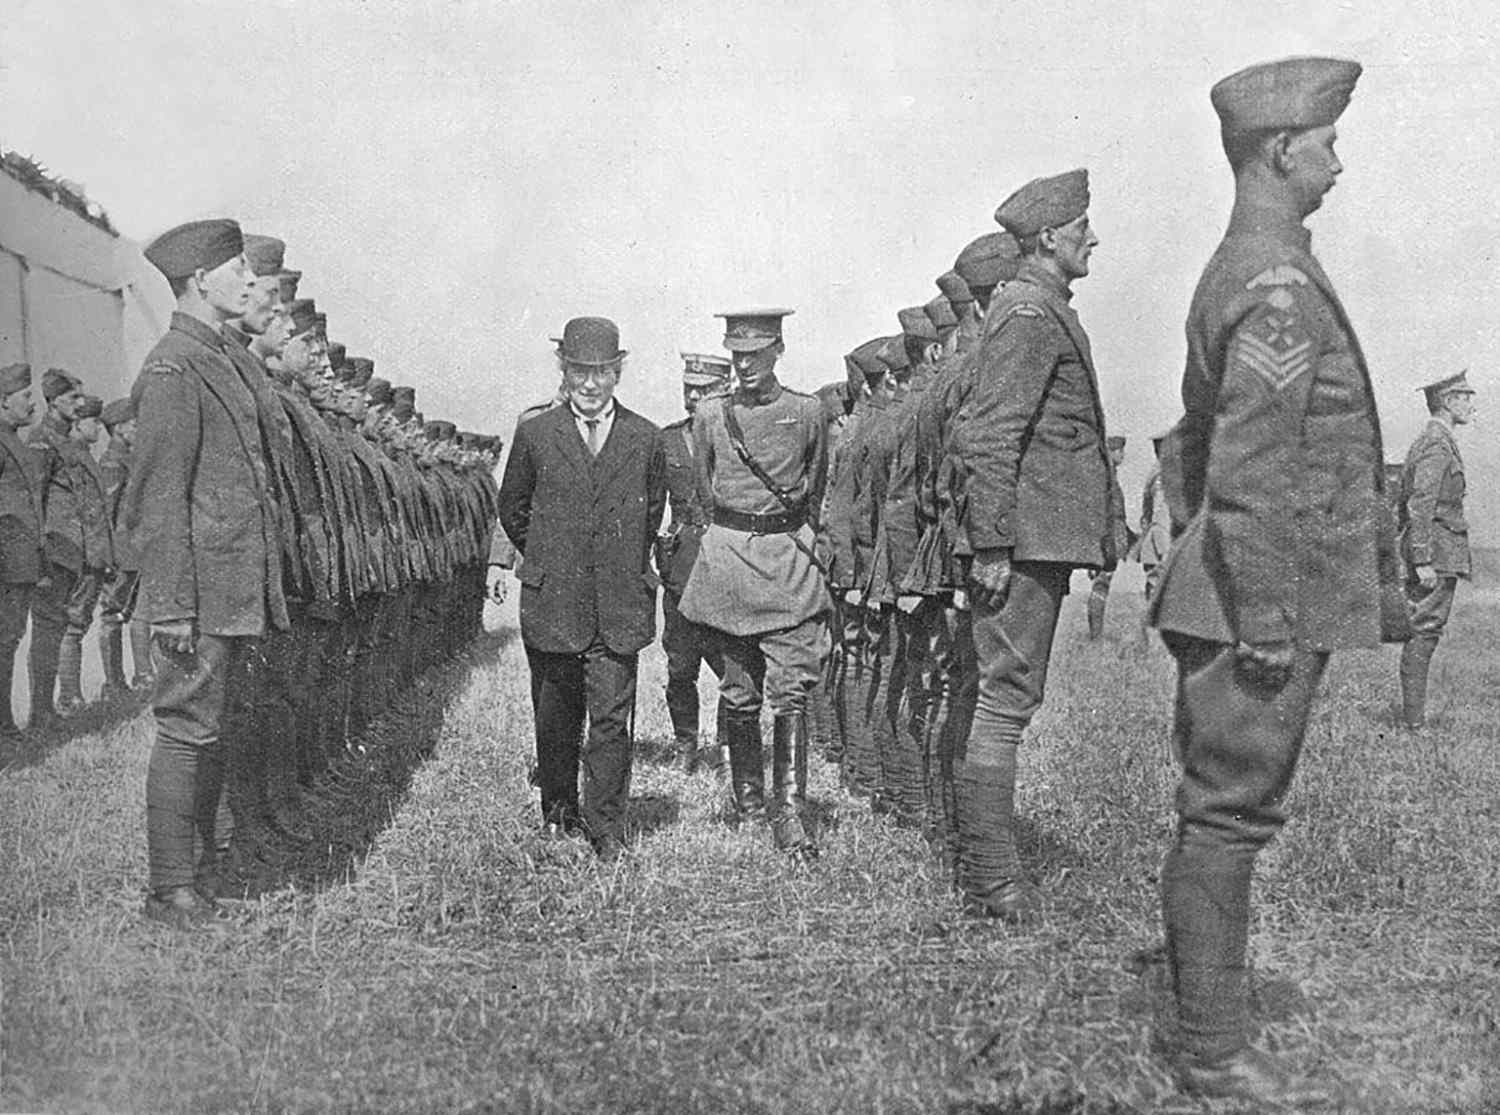 Mr. Asquith and the Royal Flying Corps